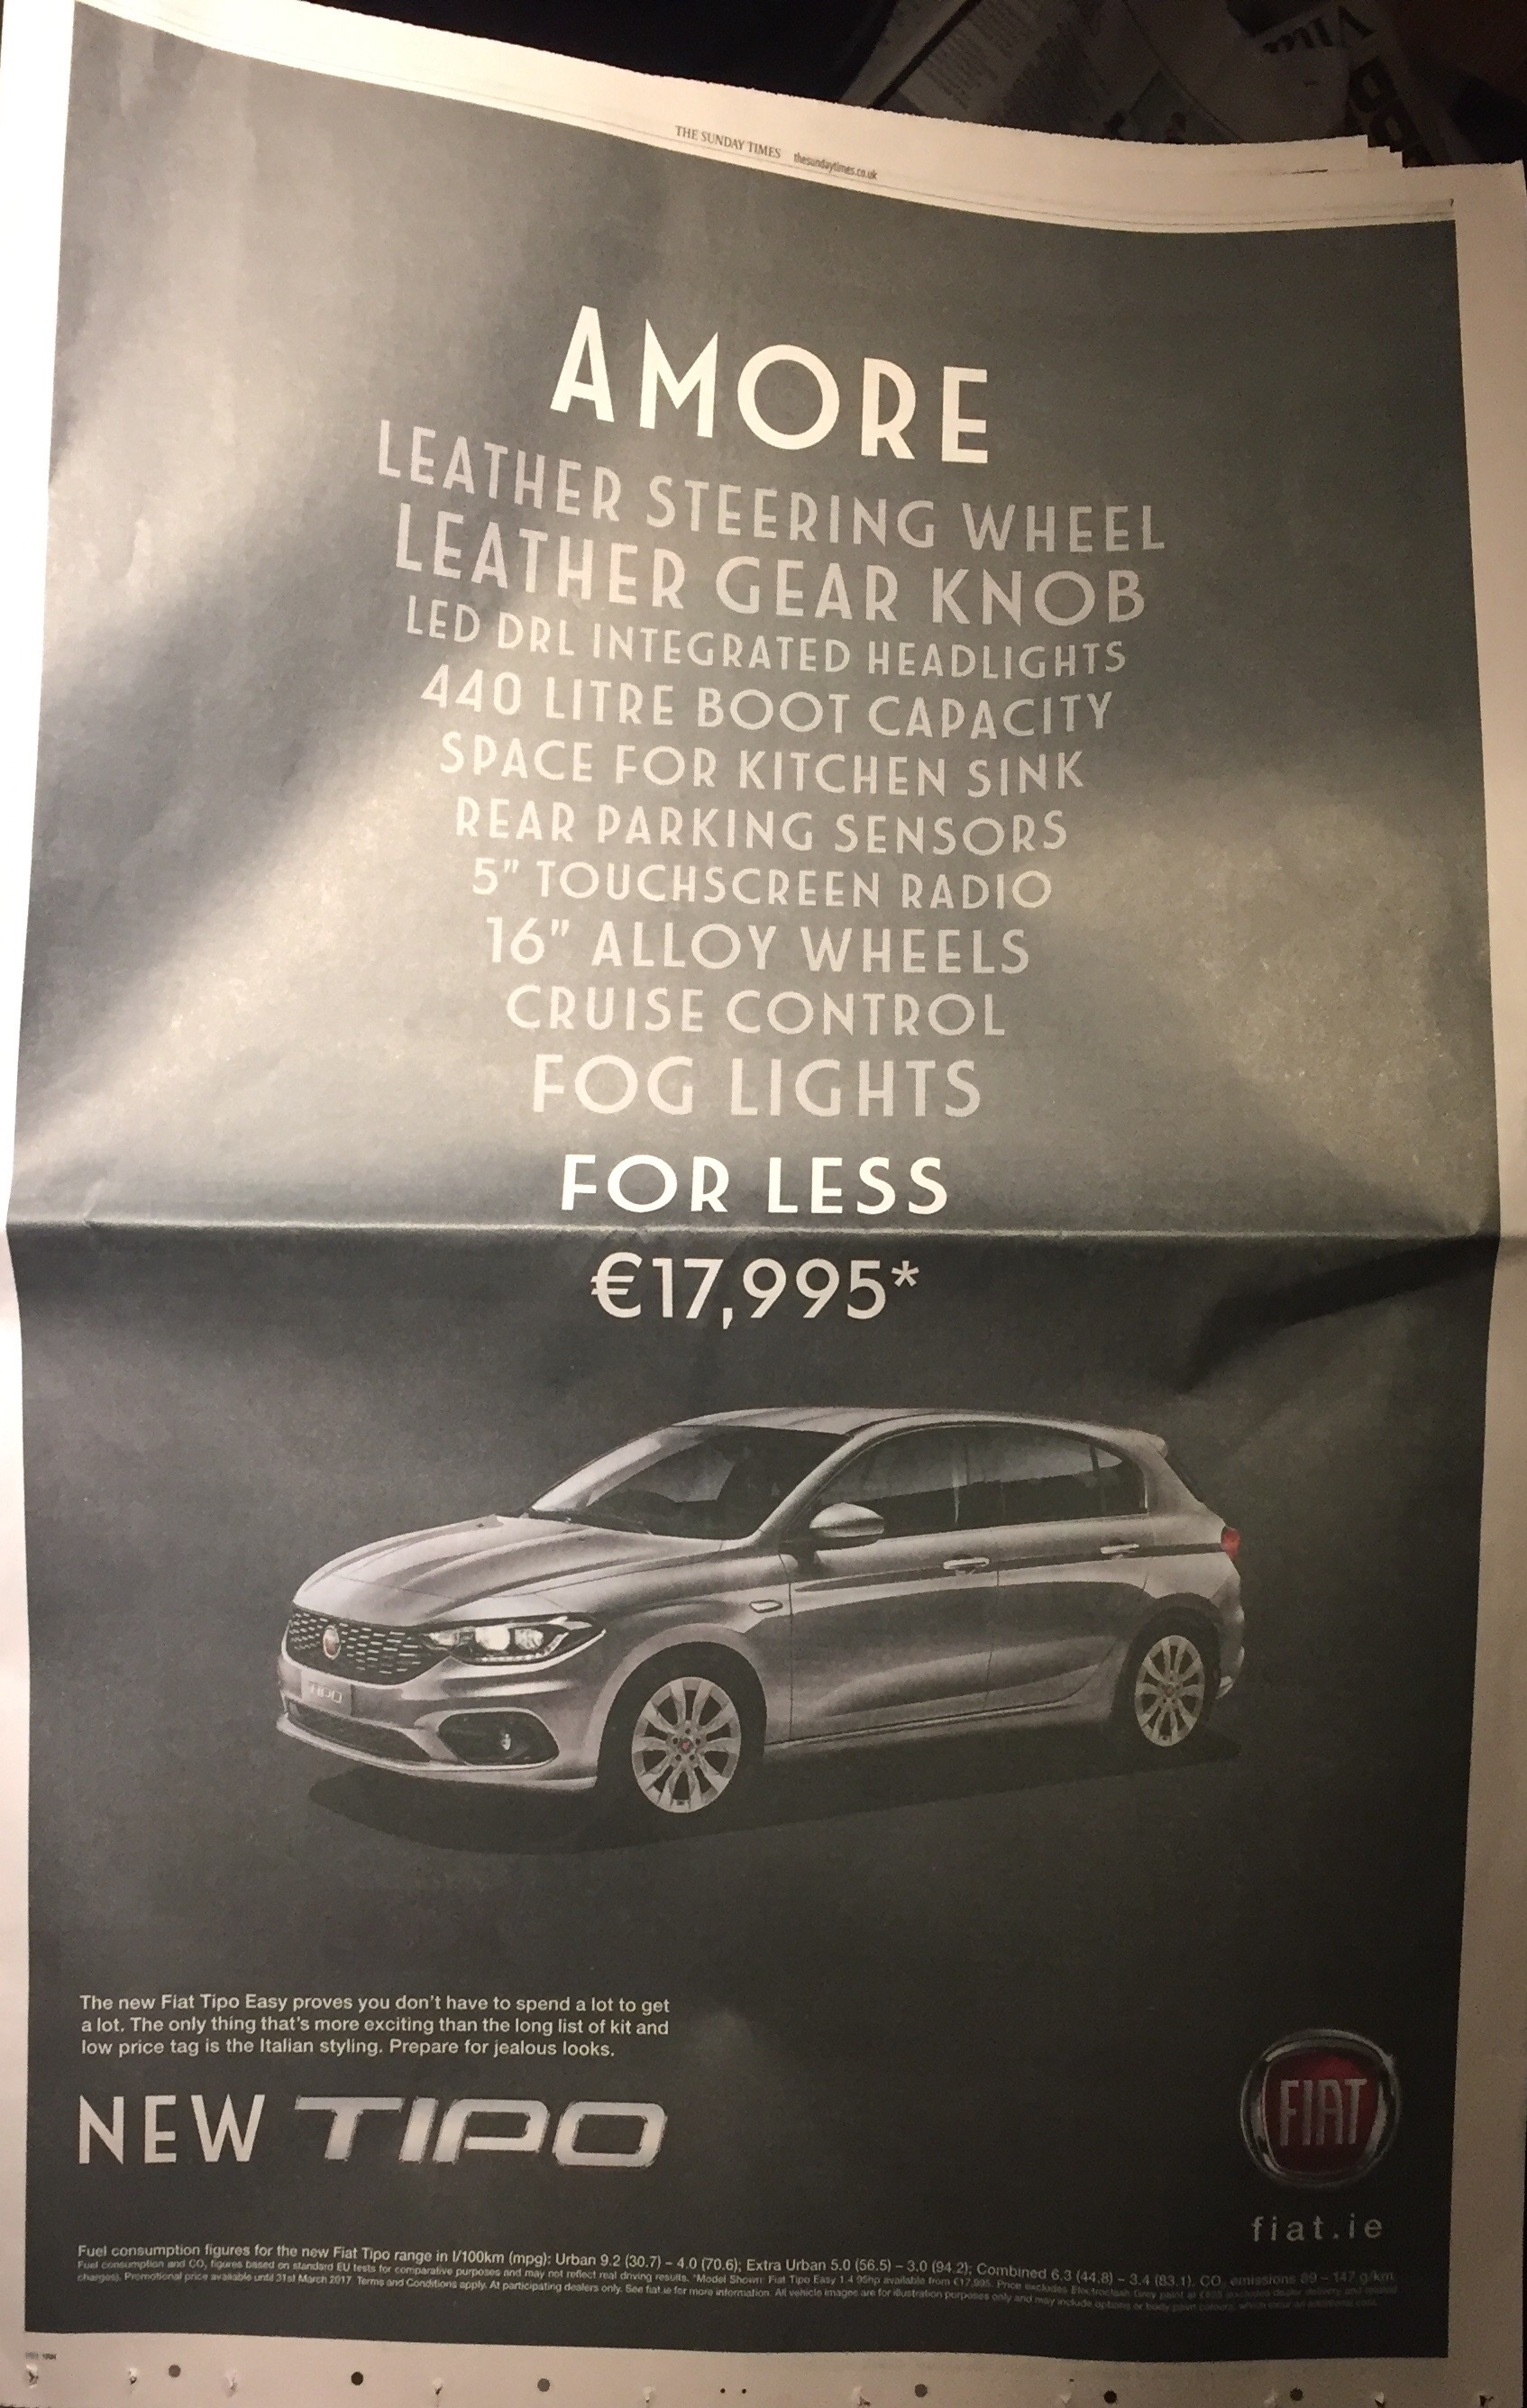 Fiat new Tipo – Amore